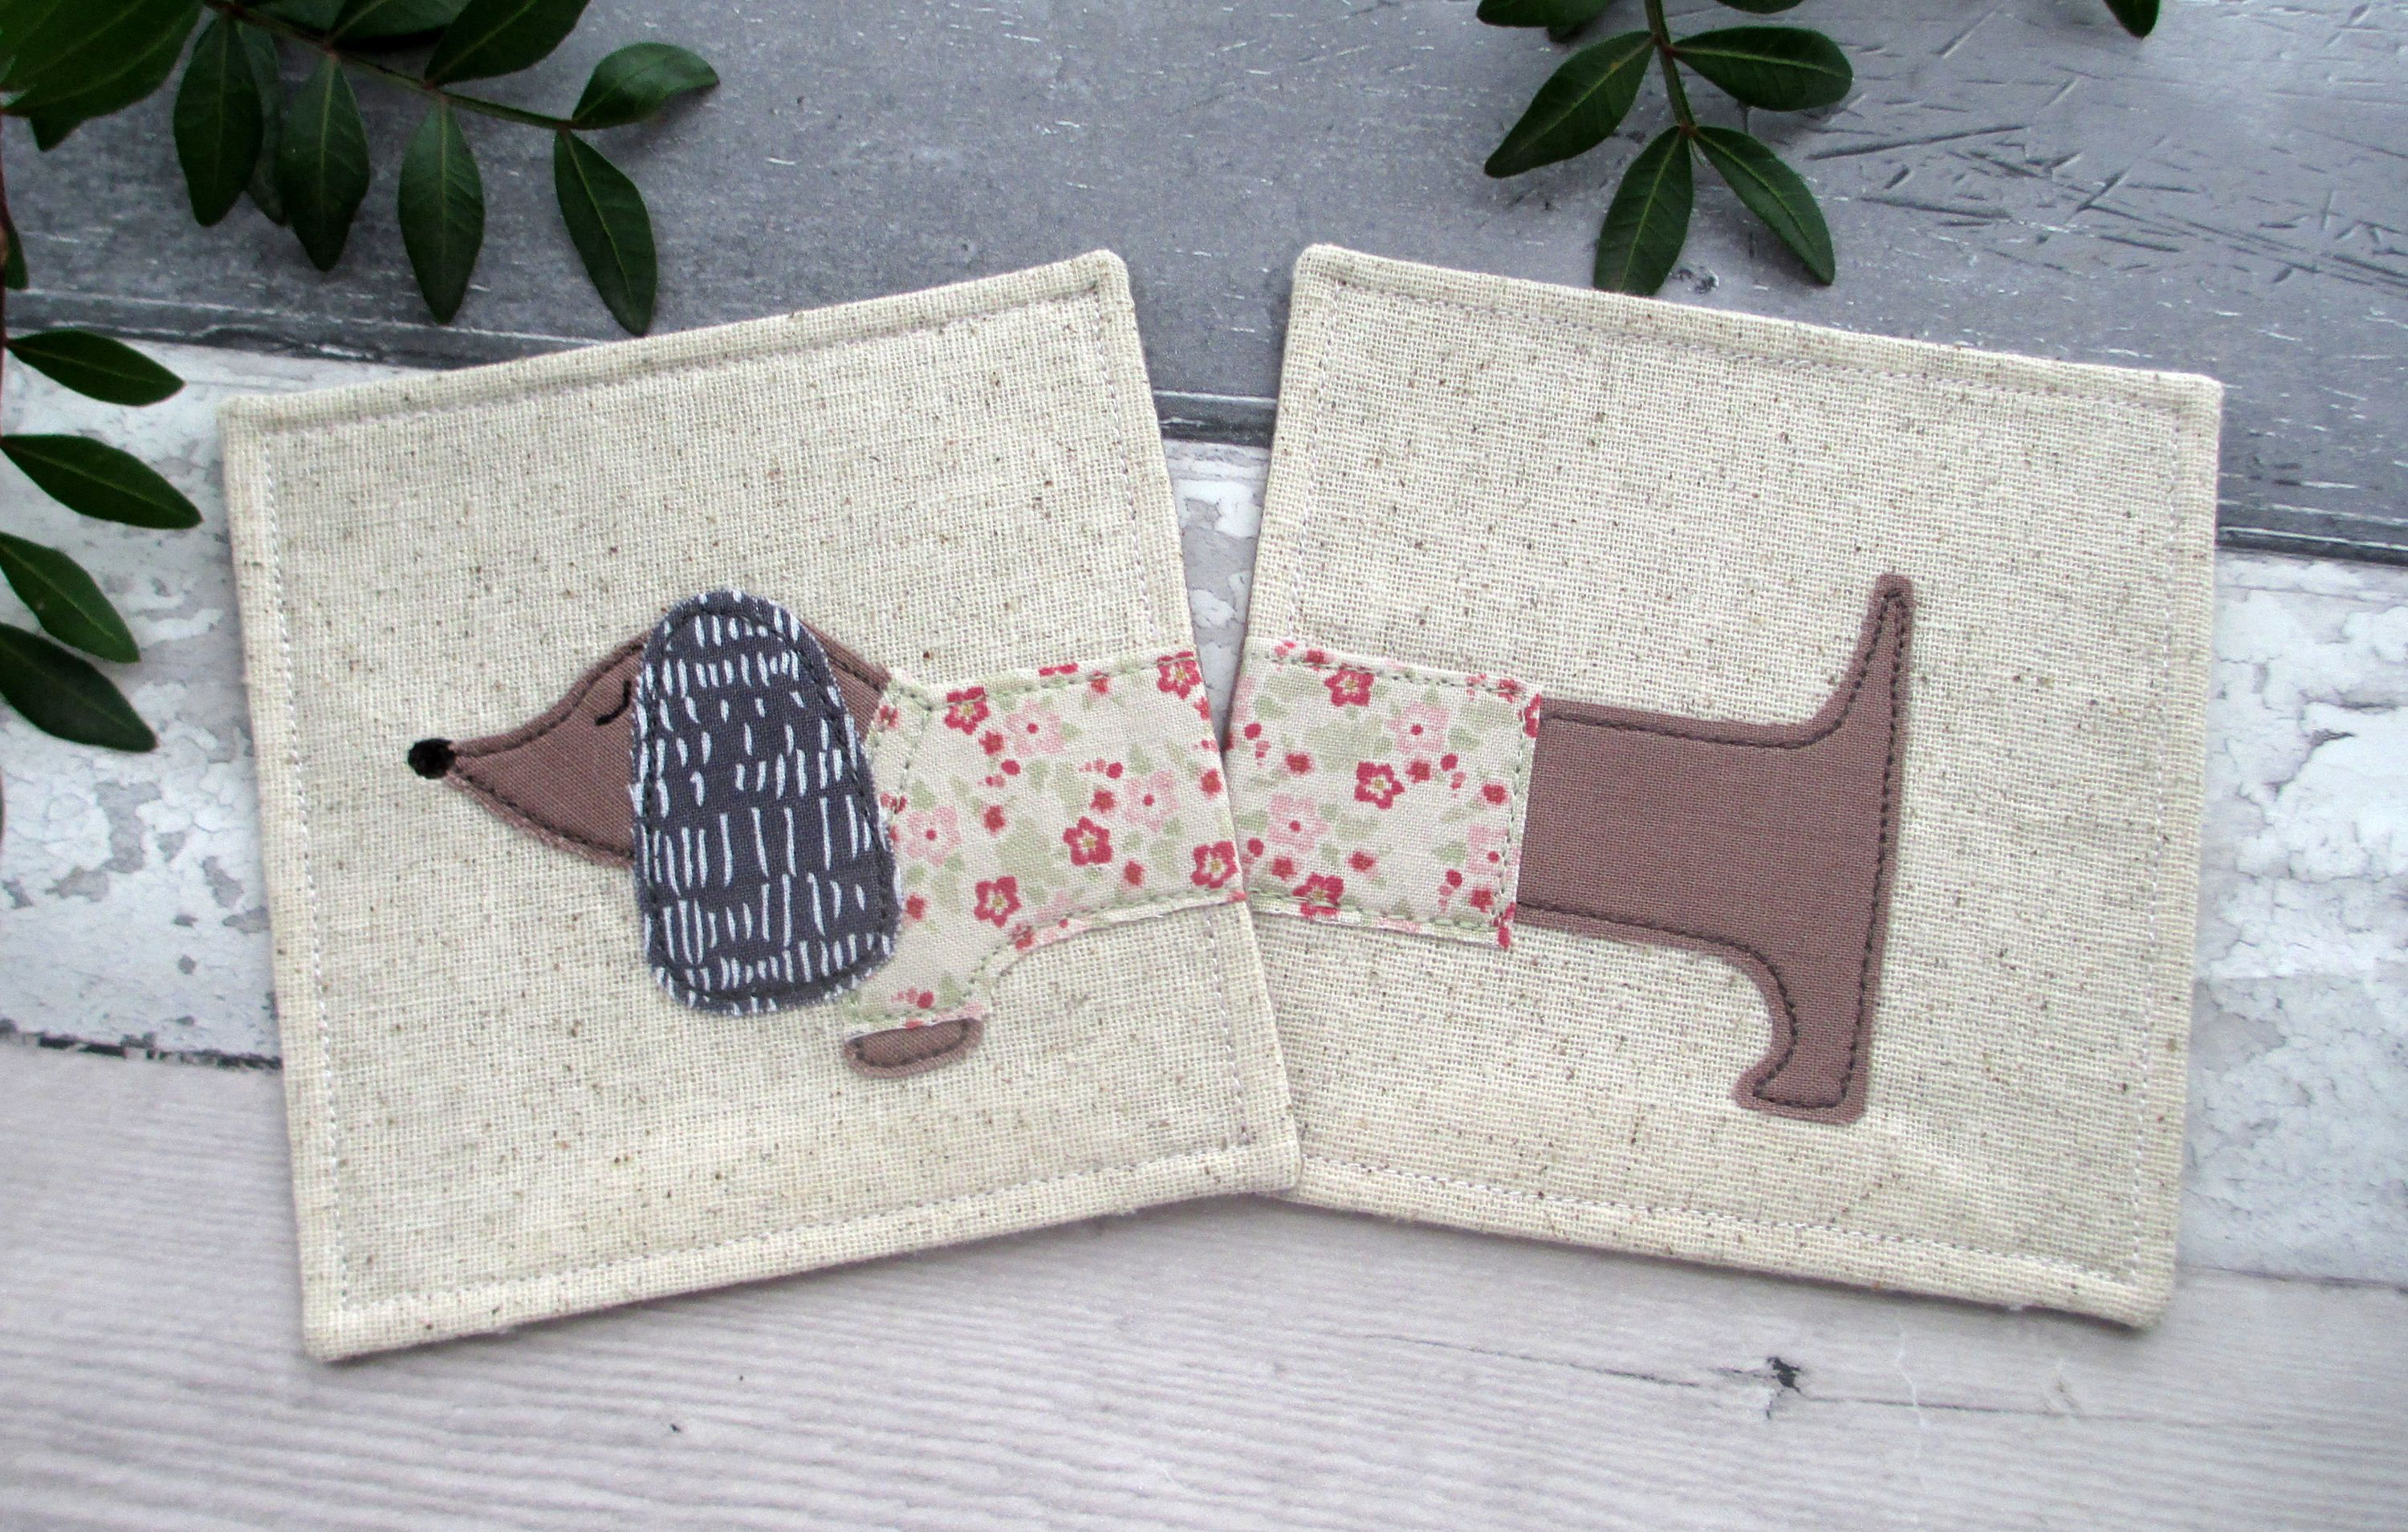 Dog Gifts For Her Part - 34: Dachshund Coasters, Drink Coasters, Dachshund Gift, Fabric Coaster, Sausage Dog  Gift, Birthday Gift, Gift For Her, Dog Coasters